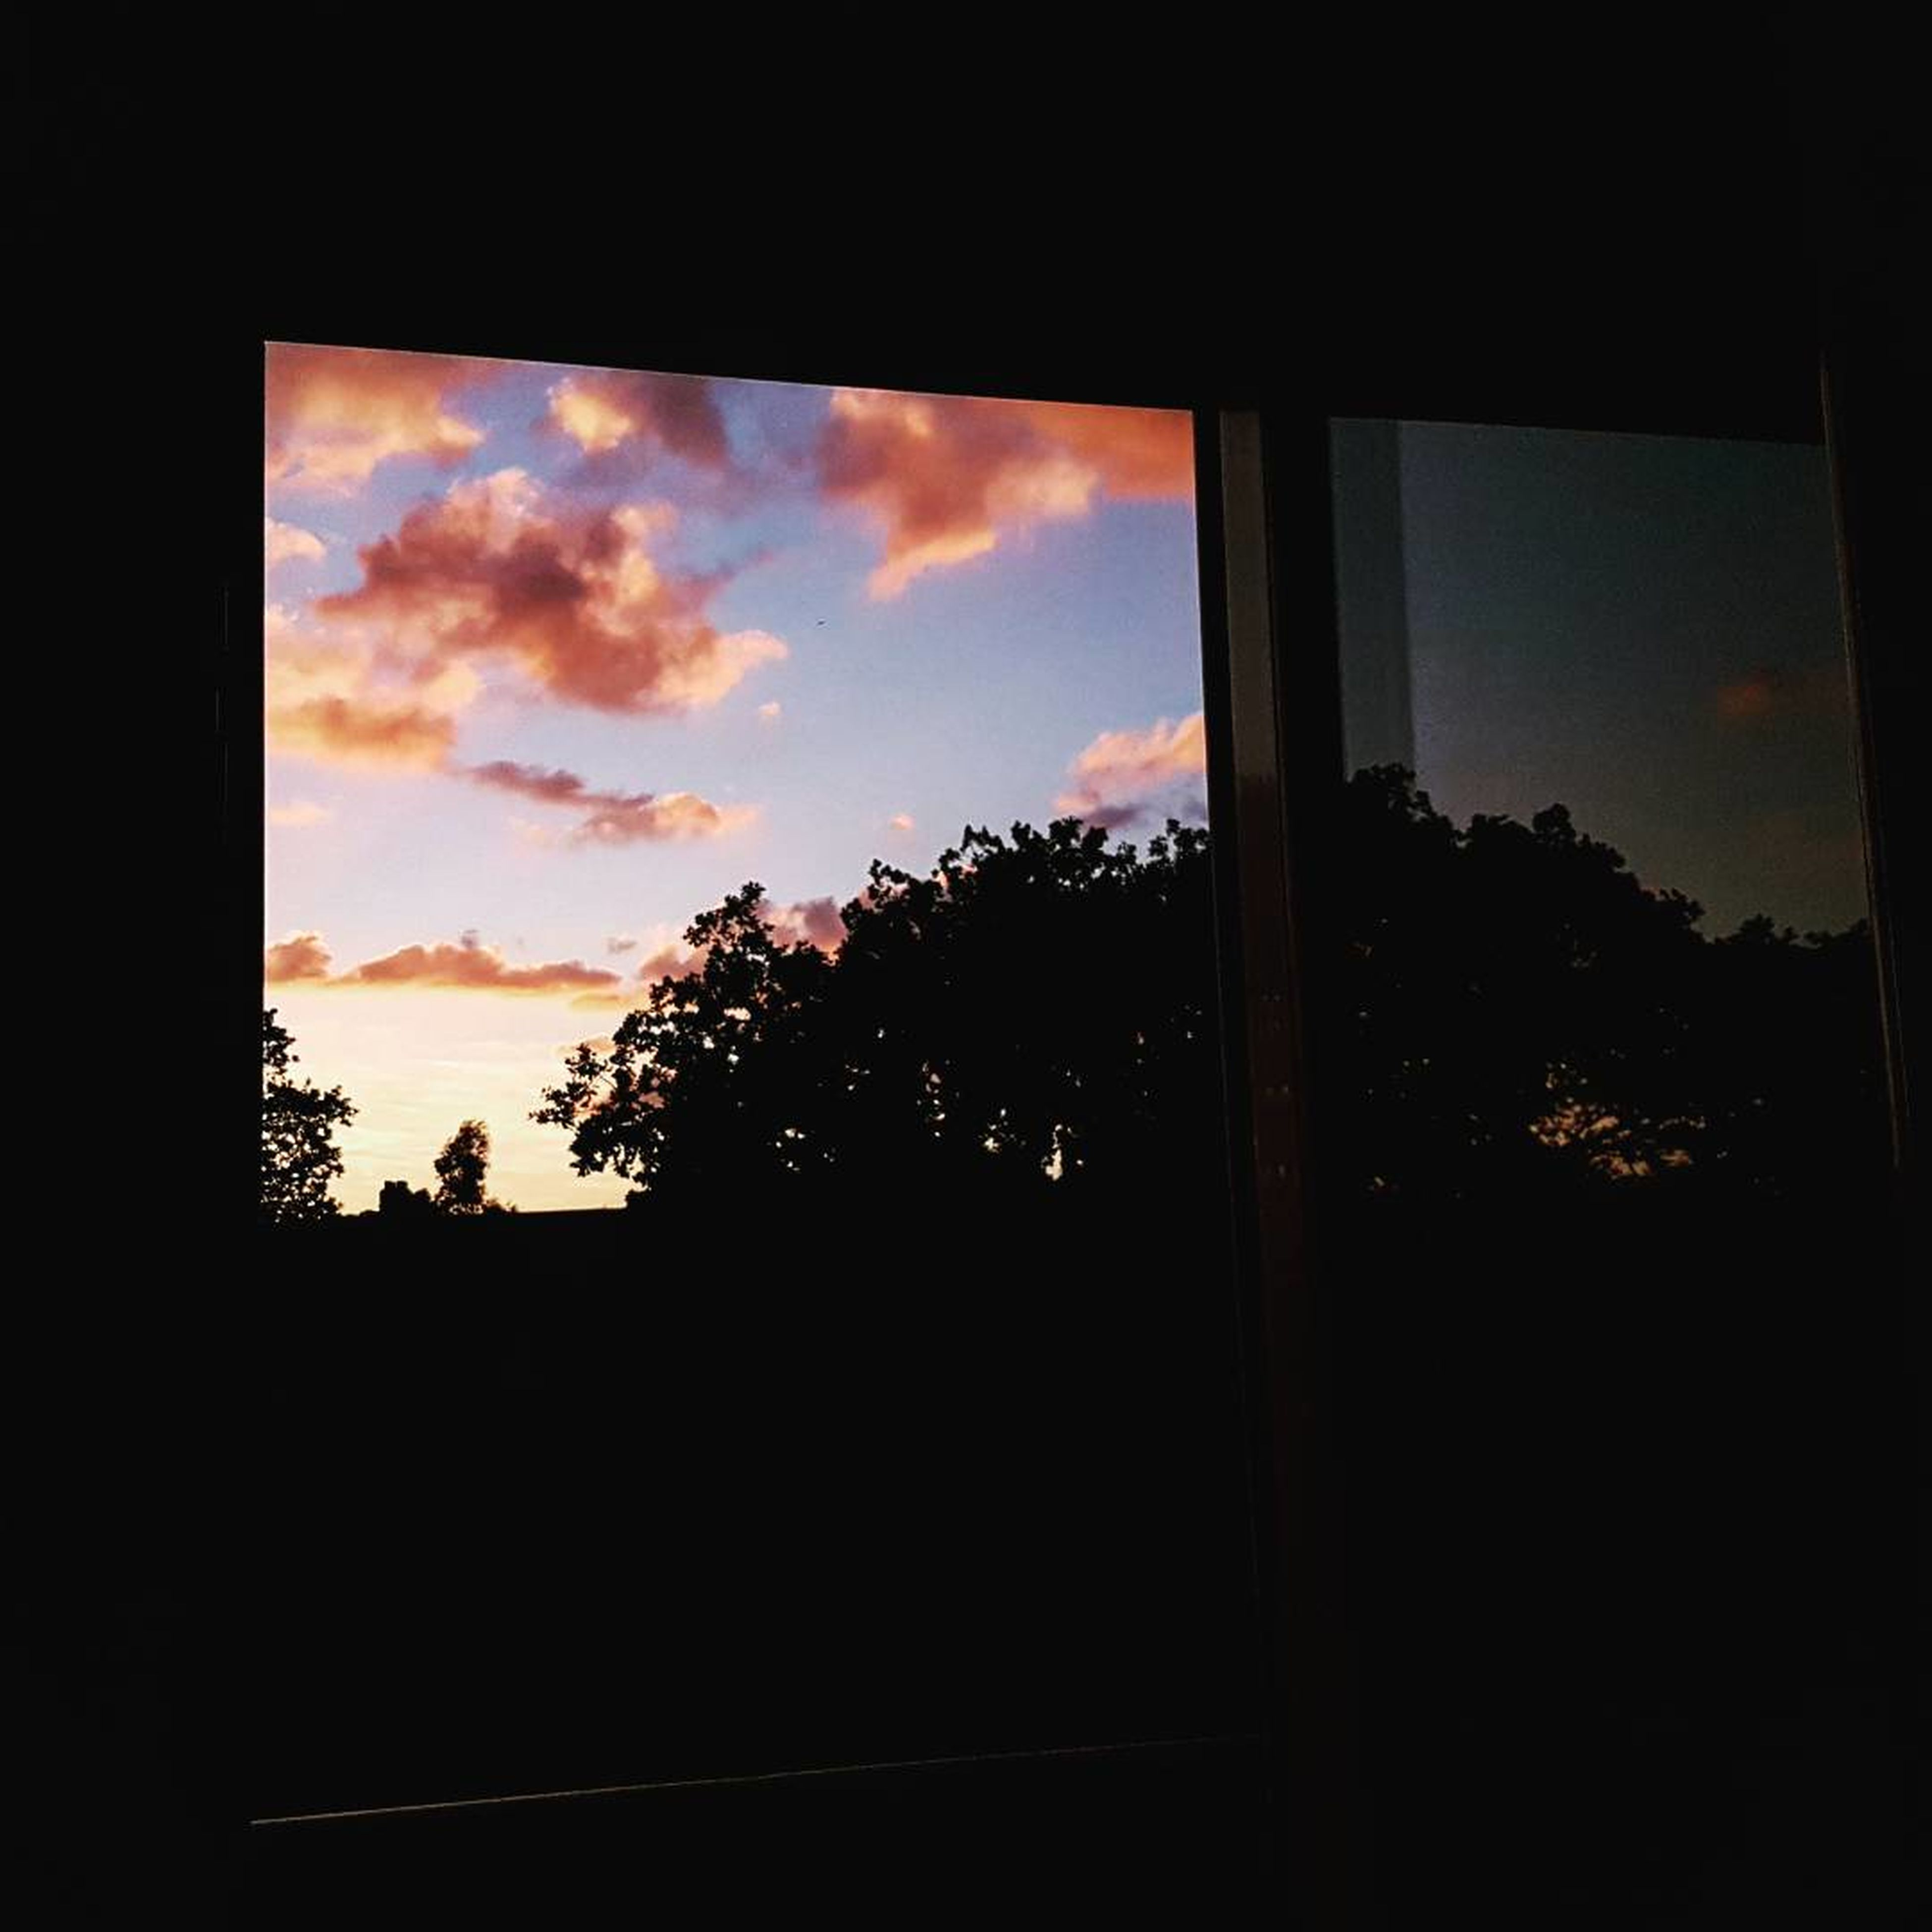 window, tree, sky, silhouette, sunset, cloud - sky, tranquil scene, nature, indoors, scenics, no people, day, beauty in nature, landscape, close-up